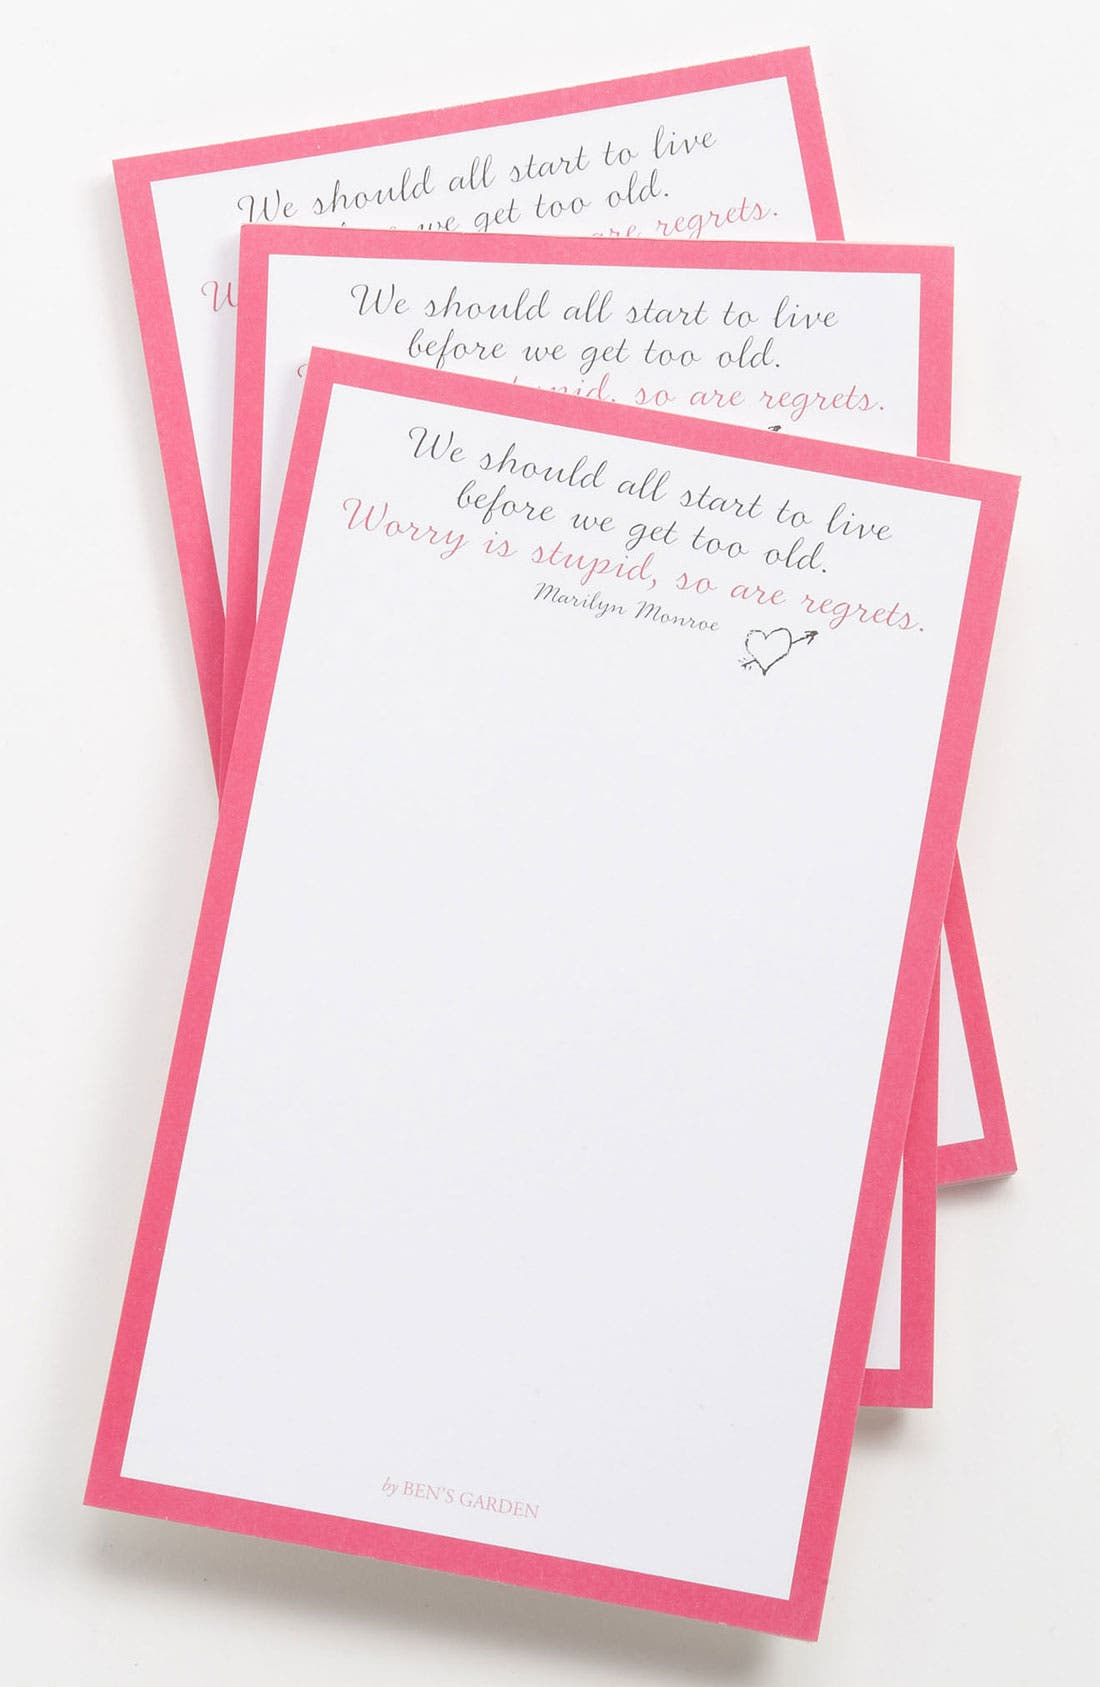 Main Image - Ben's Garden 'We All Should Start to Live' Notepads (3-Pack)